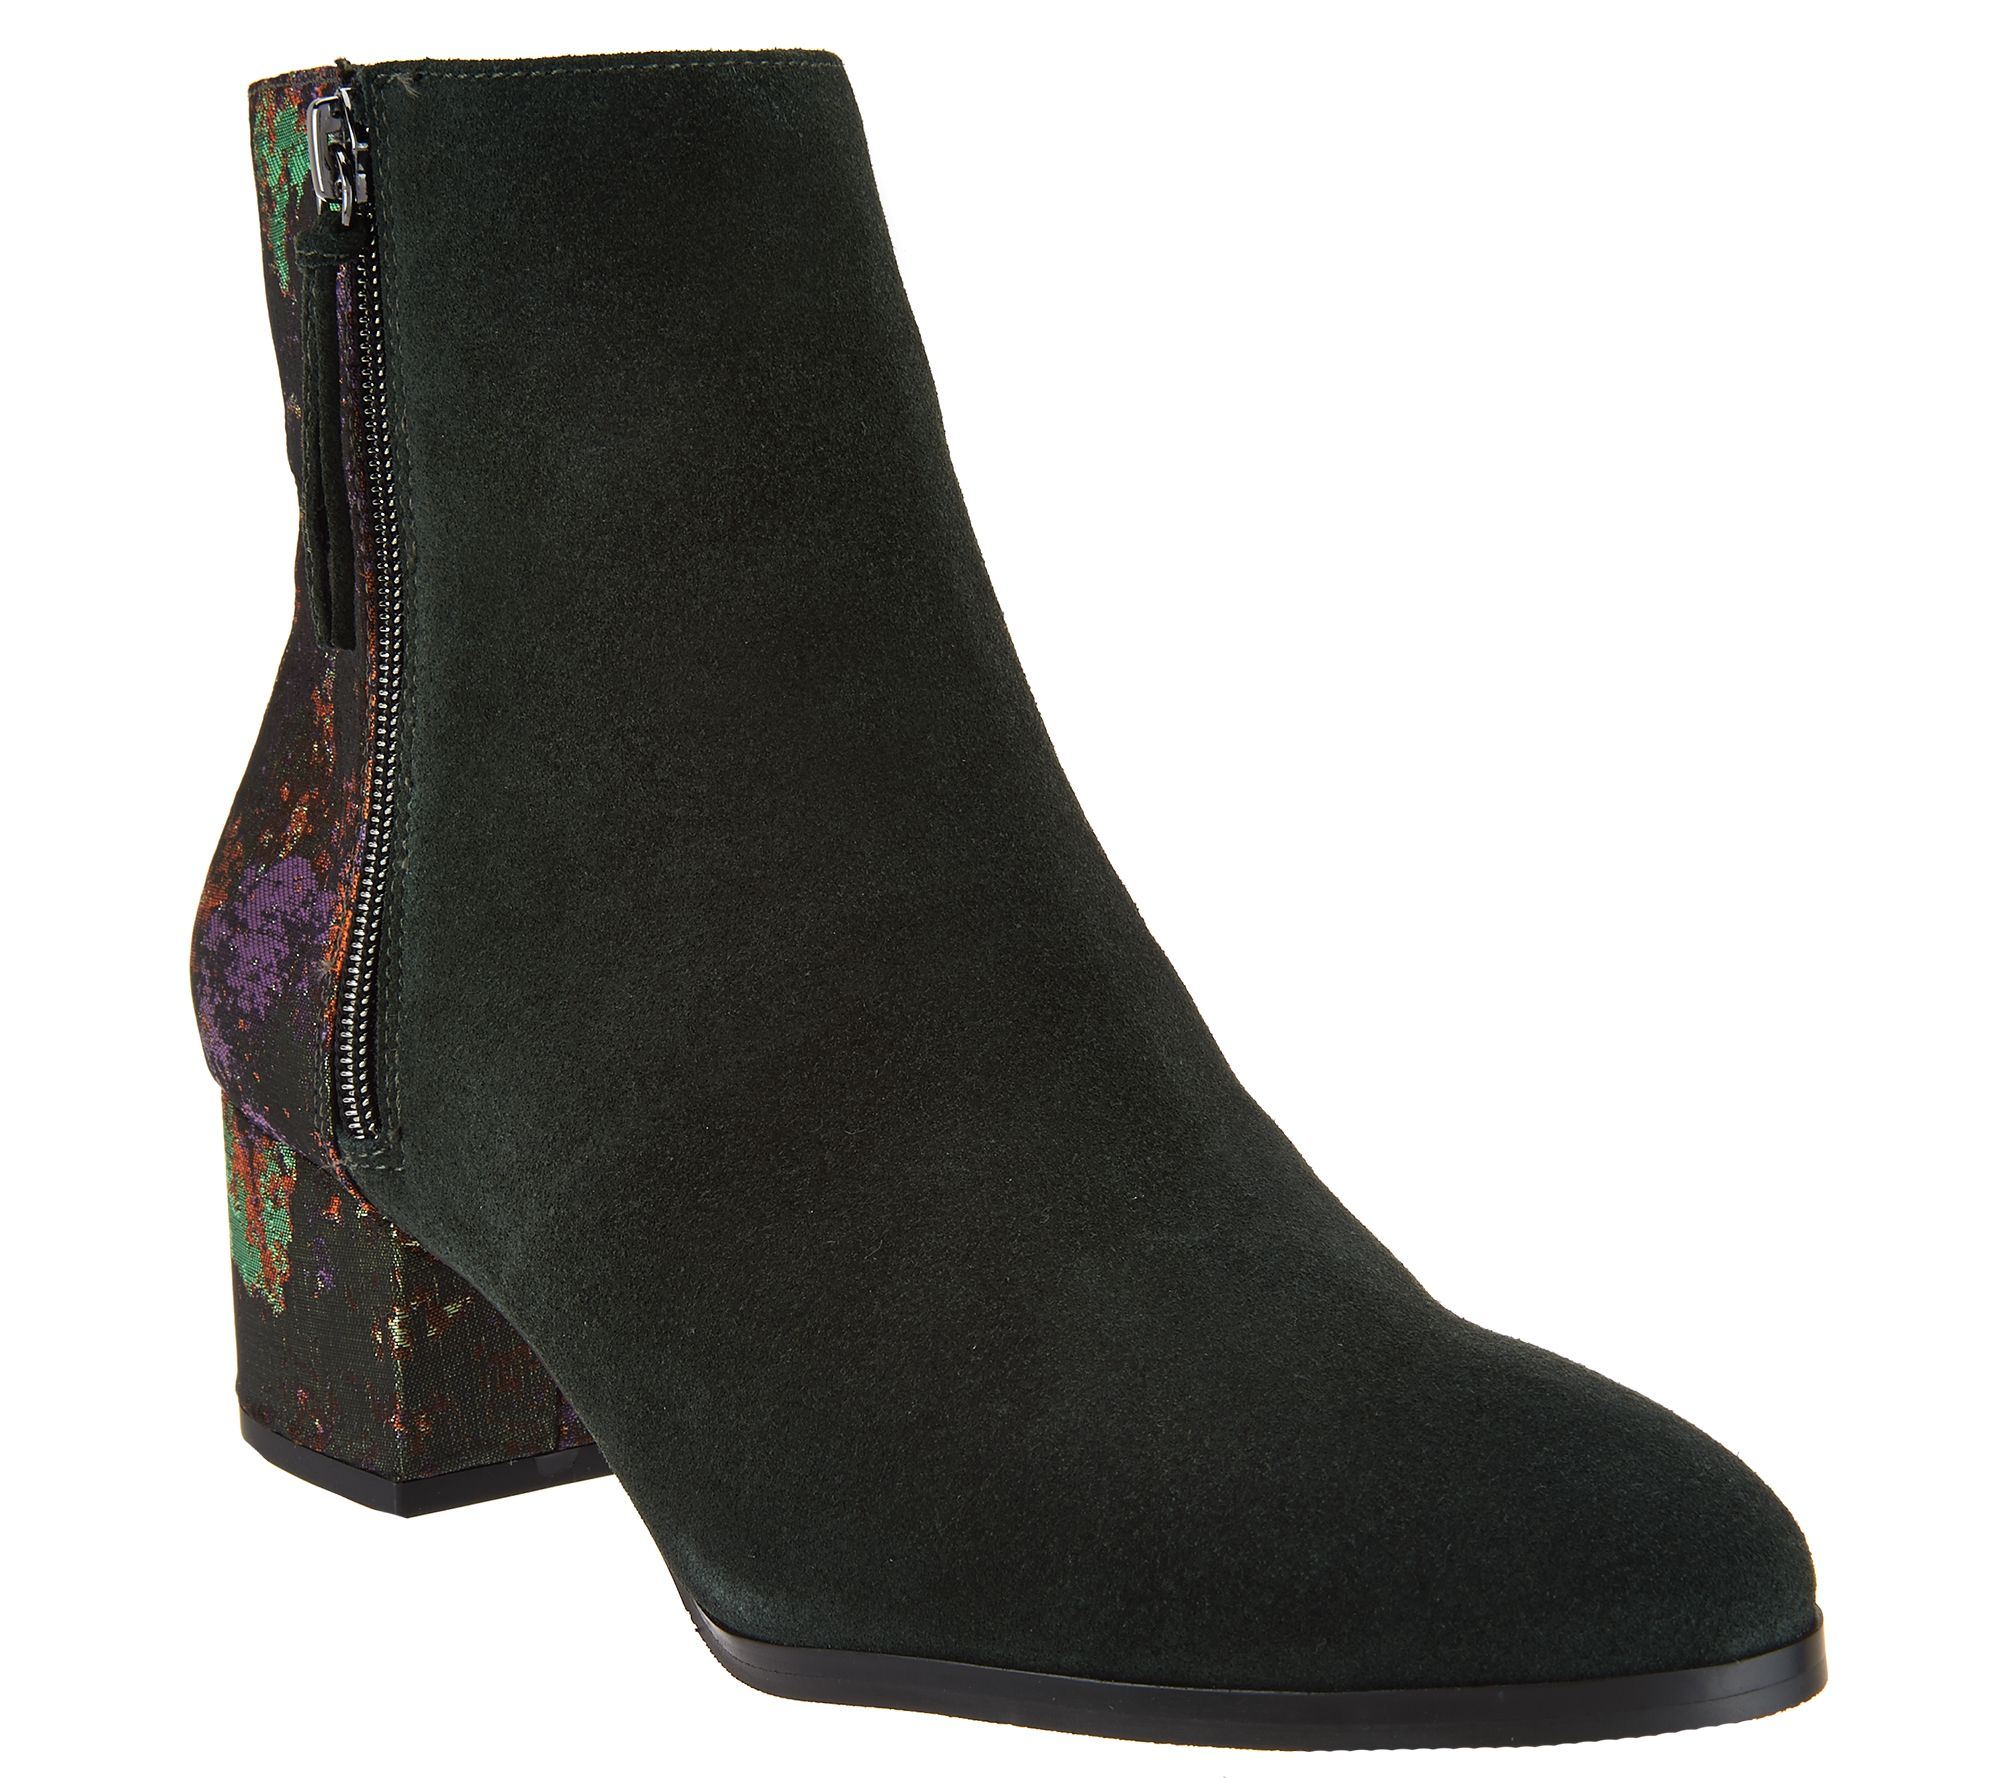 logo lavish by lori goldstein ankle boots with brocade back page 1 qvc com